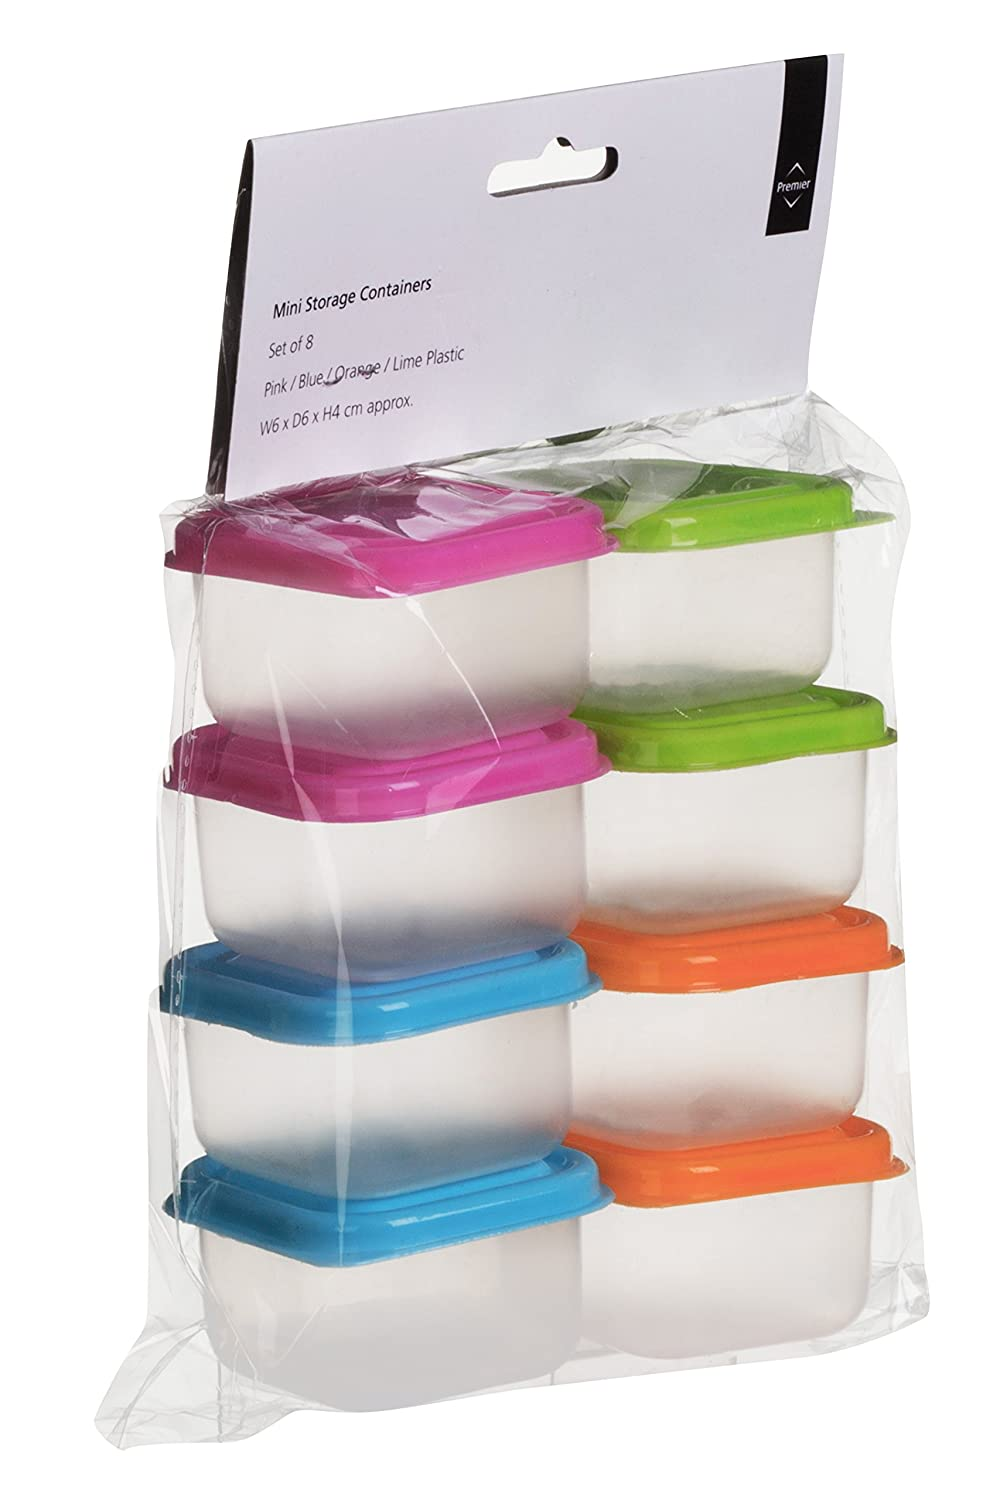 premier housewares mini storage containers set of 8 multi coloured amazoncouk kitchen home - Small Storage Containers